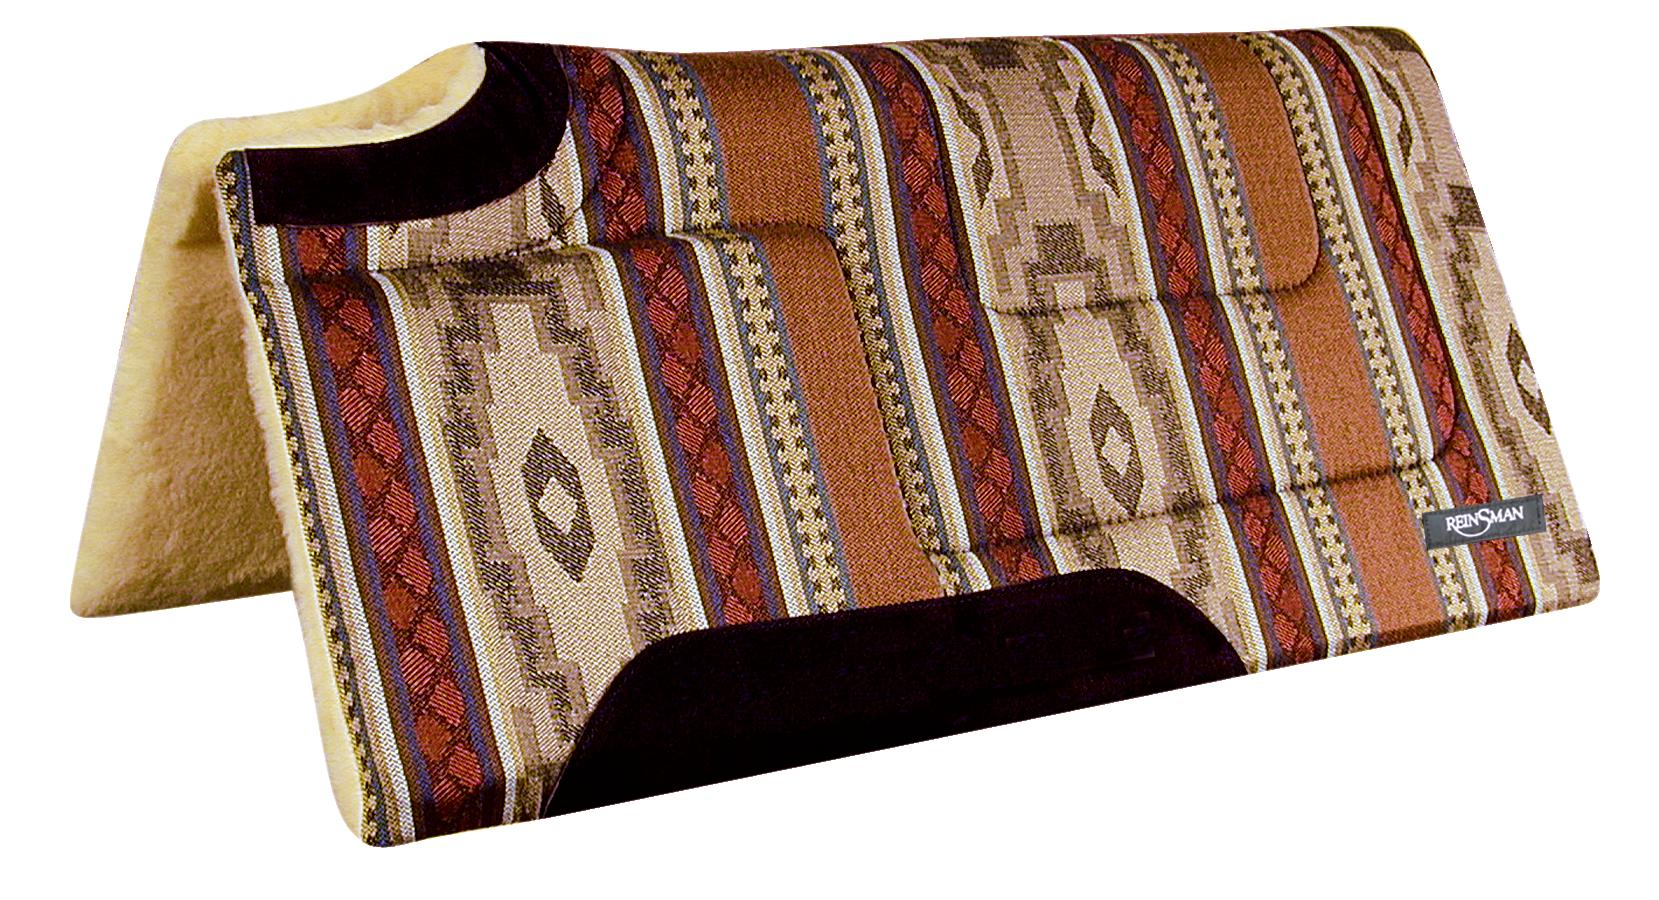 REINSMAN Square Cutback/Built-Up Fleece Herculon Pad - Lodge Trail Beige Print